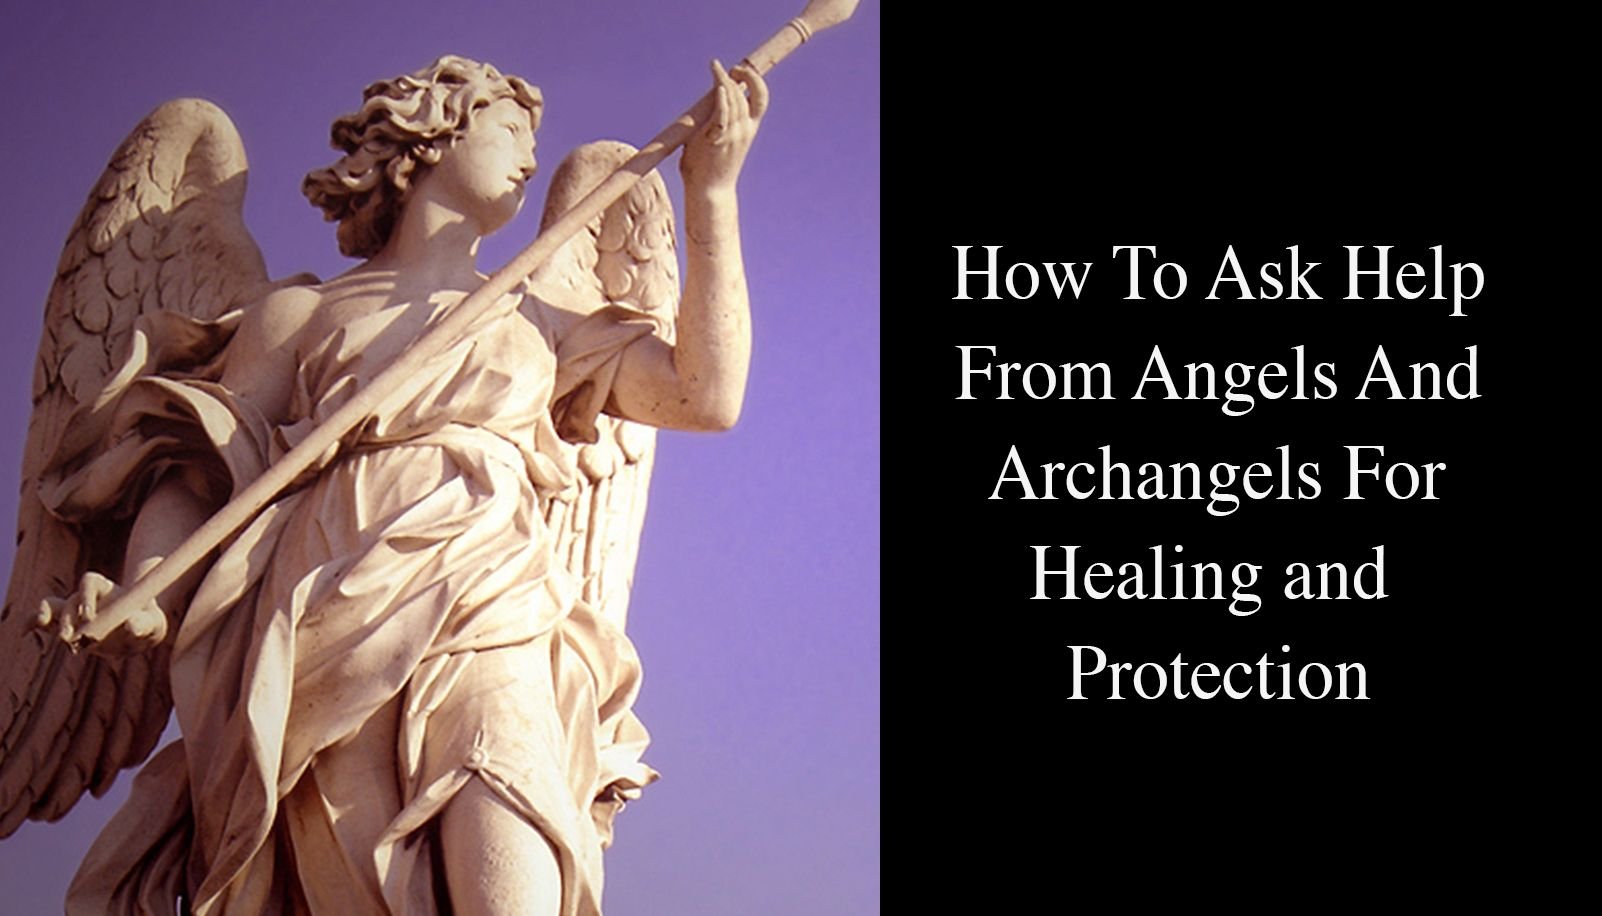 How To Ask Help From Angels And Archangels For Healing and Protection